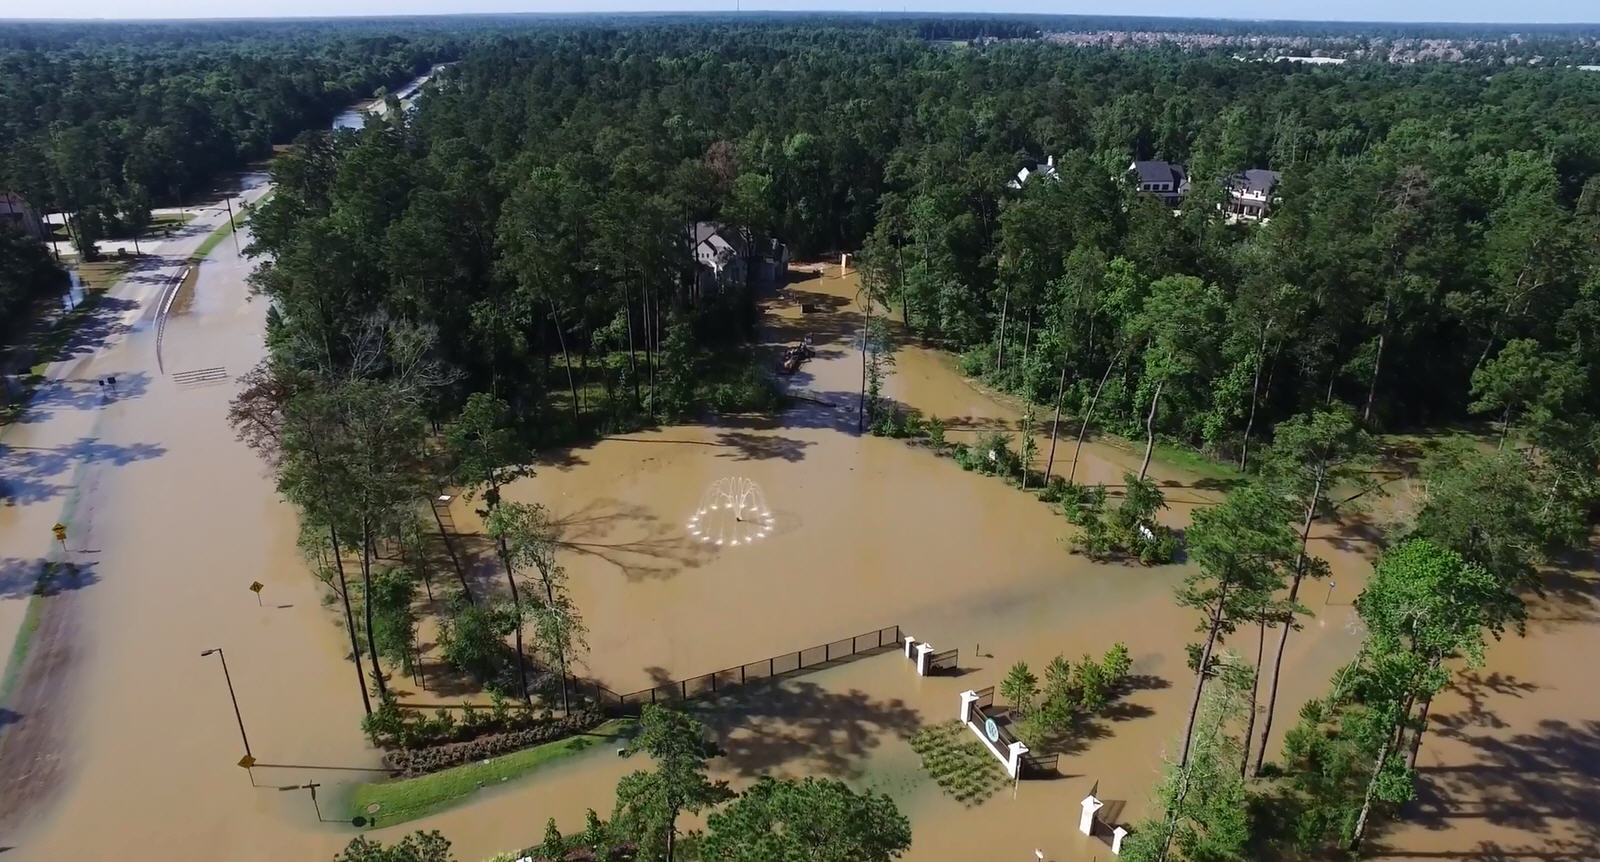 The Woodlands Texas Flooding >> Drone footage shows flooding in The Woodlands near Houston ...